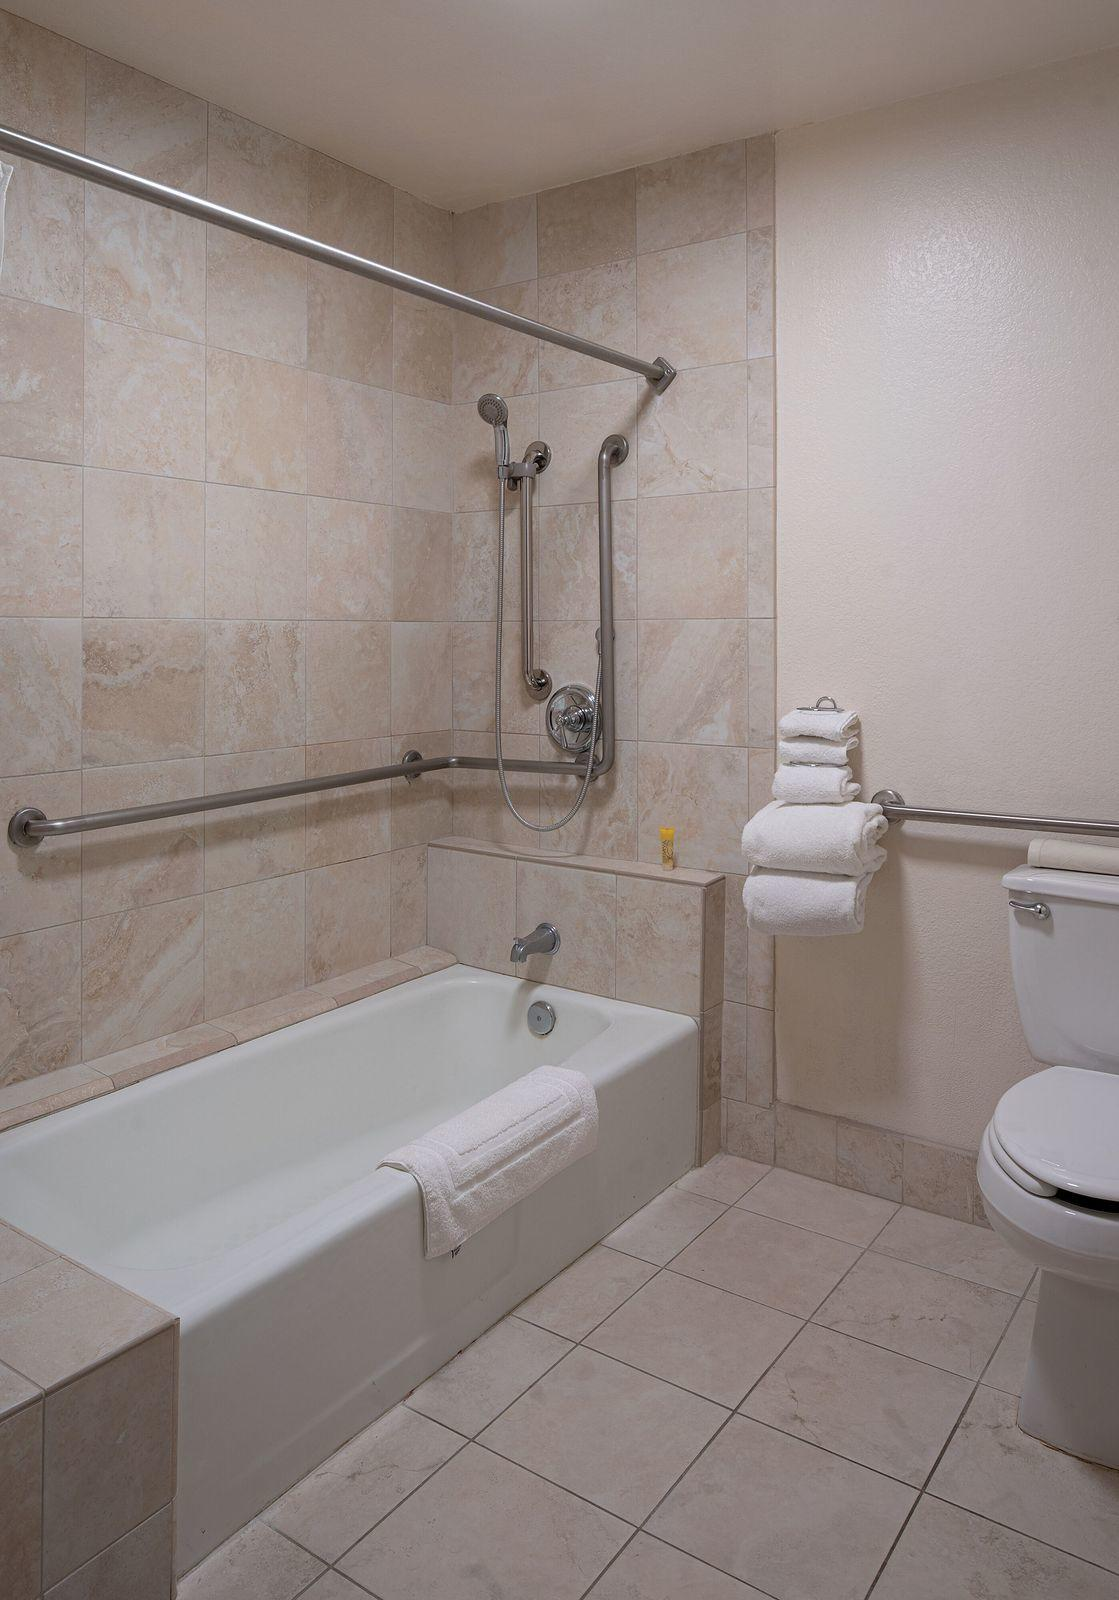 Ground floor tub, a shower, and a toilet in a hotel bathroom